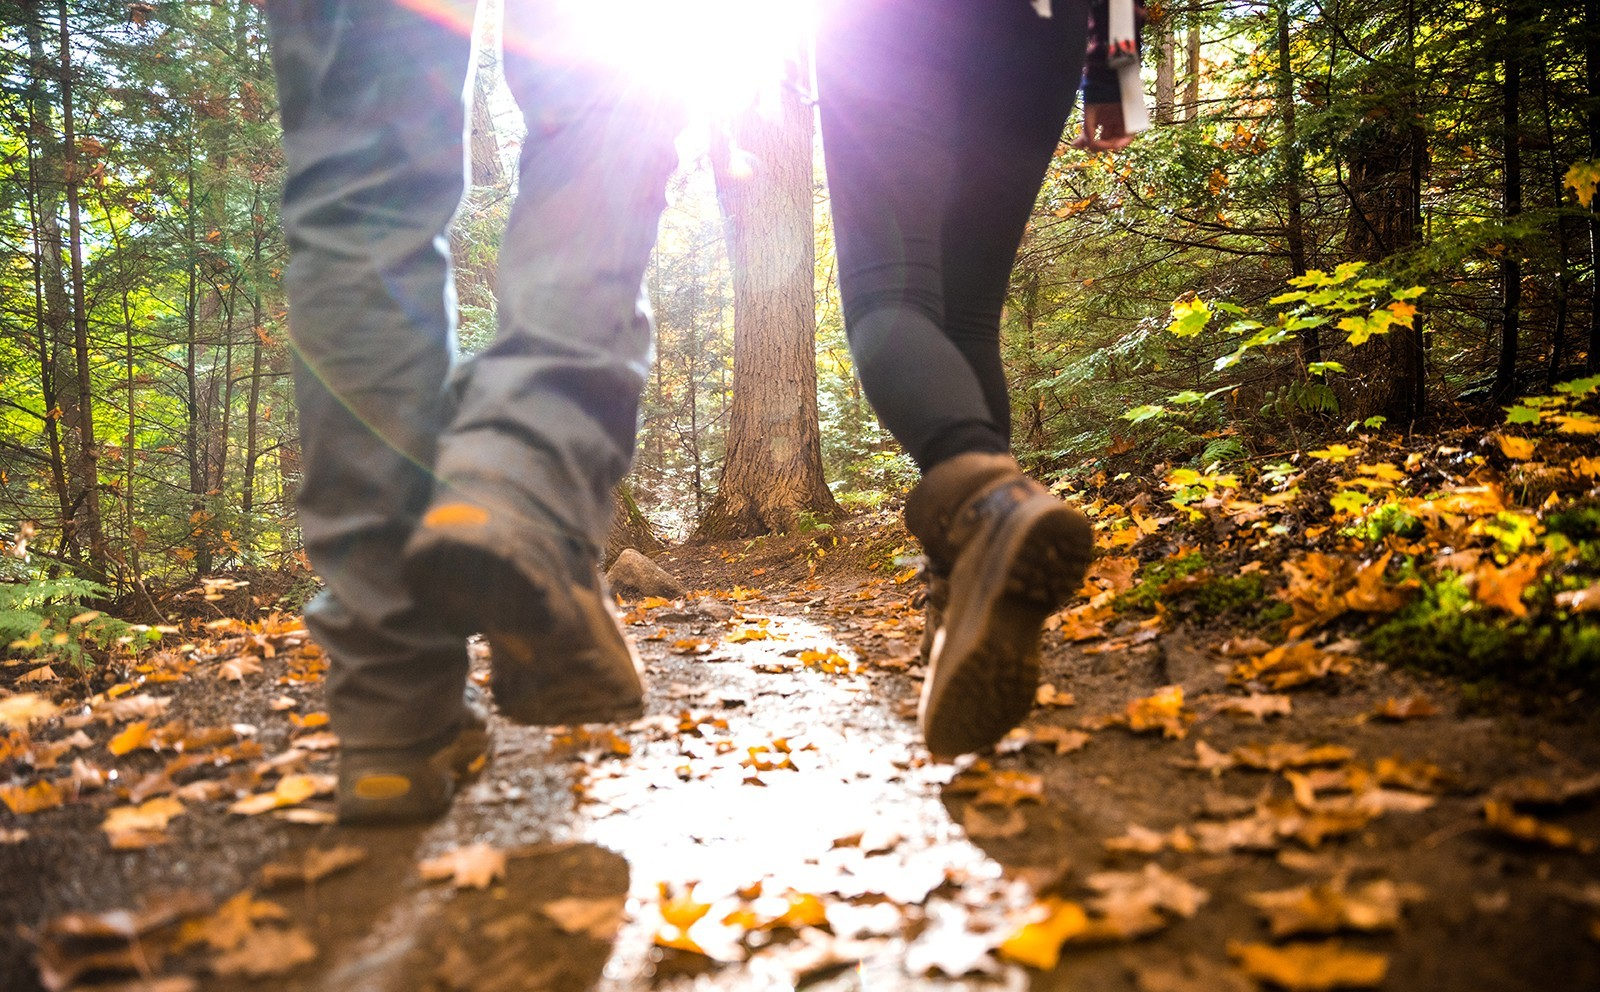 Two people in boots walking along a muddy path in a forest.